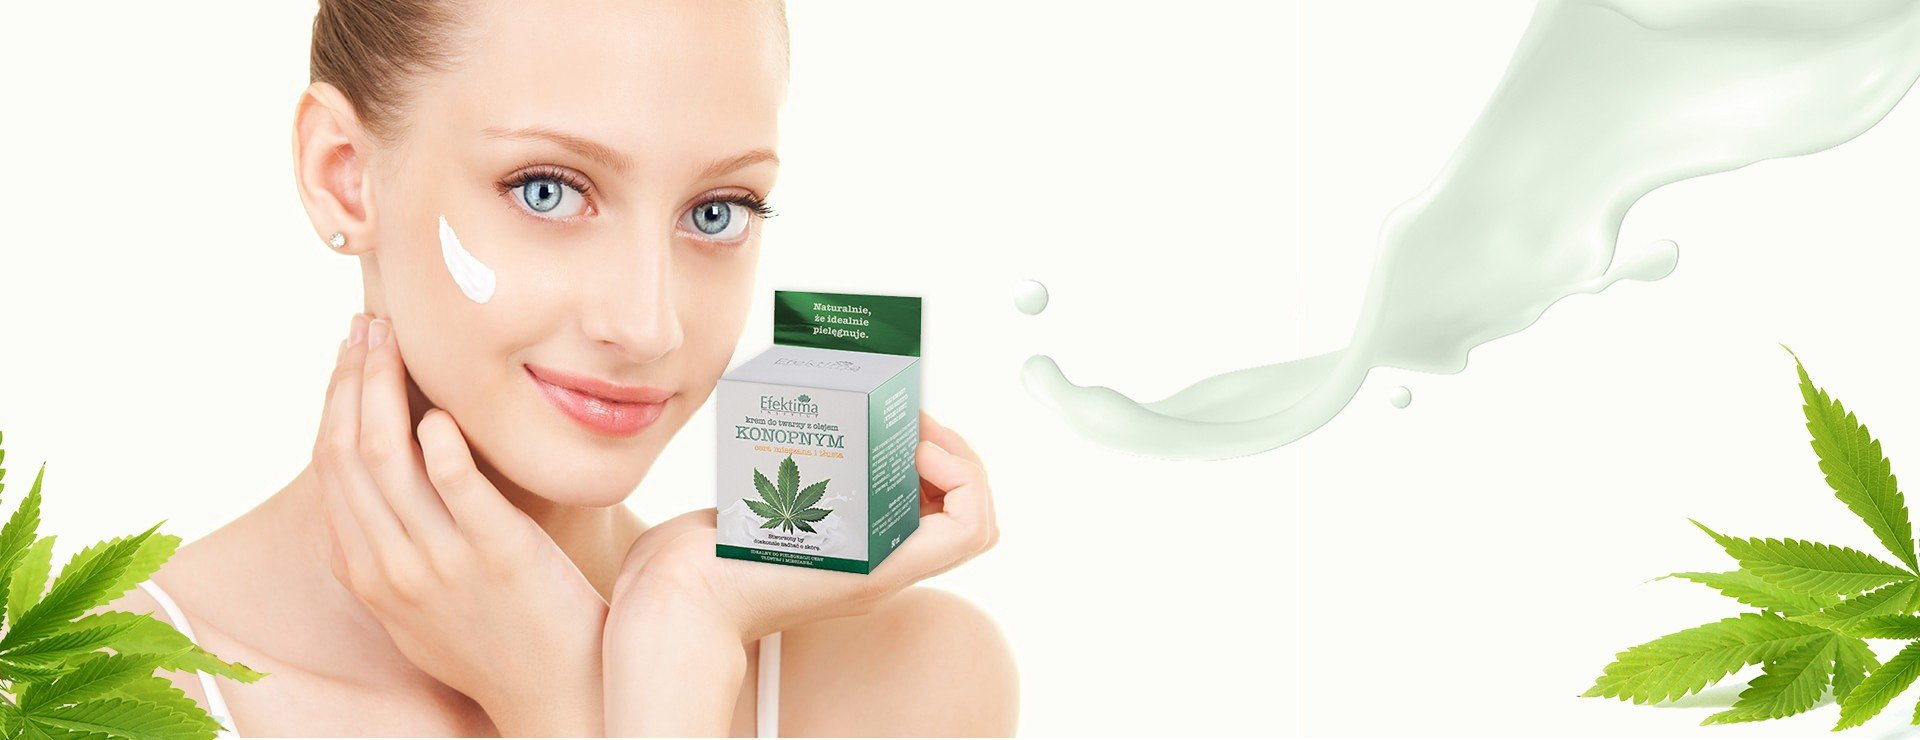 Cream with hemp oil